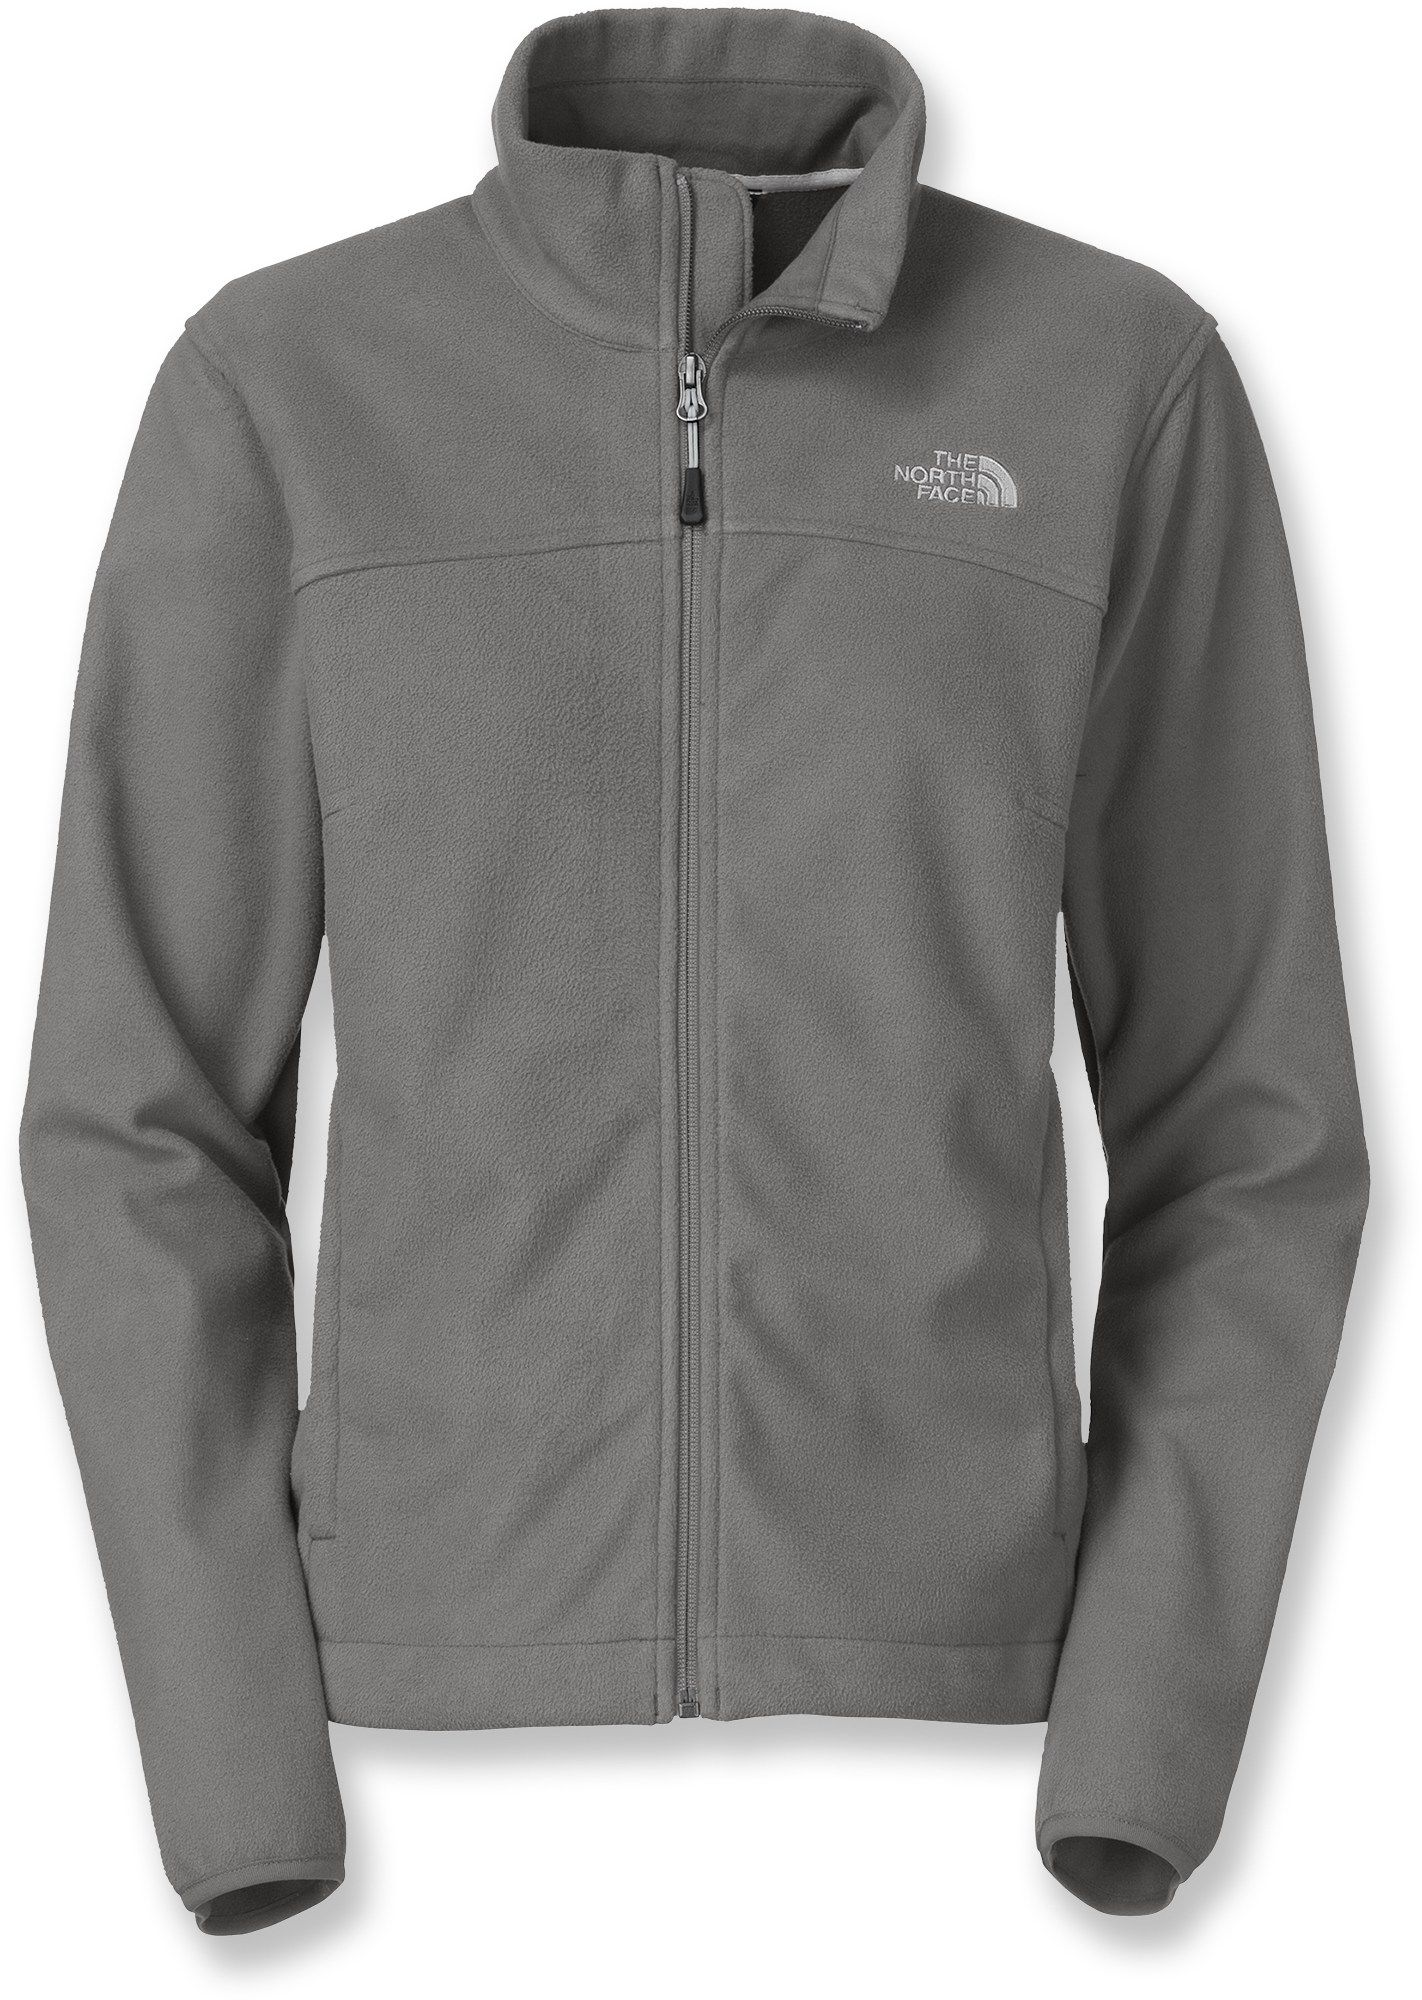 The North Face Windwall 1 Fleece Jacket Women S Rei Co Op Fleece Jacket Womens North Face Windwall The North Face [ 2000 x 1422 Pixel ]